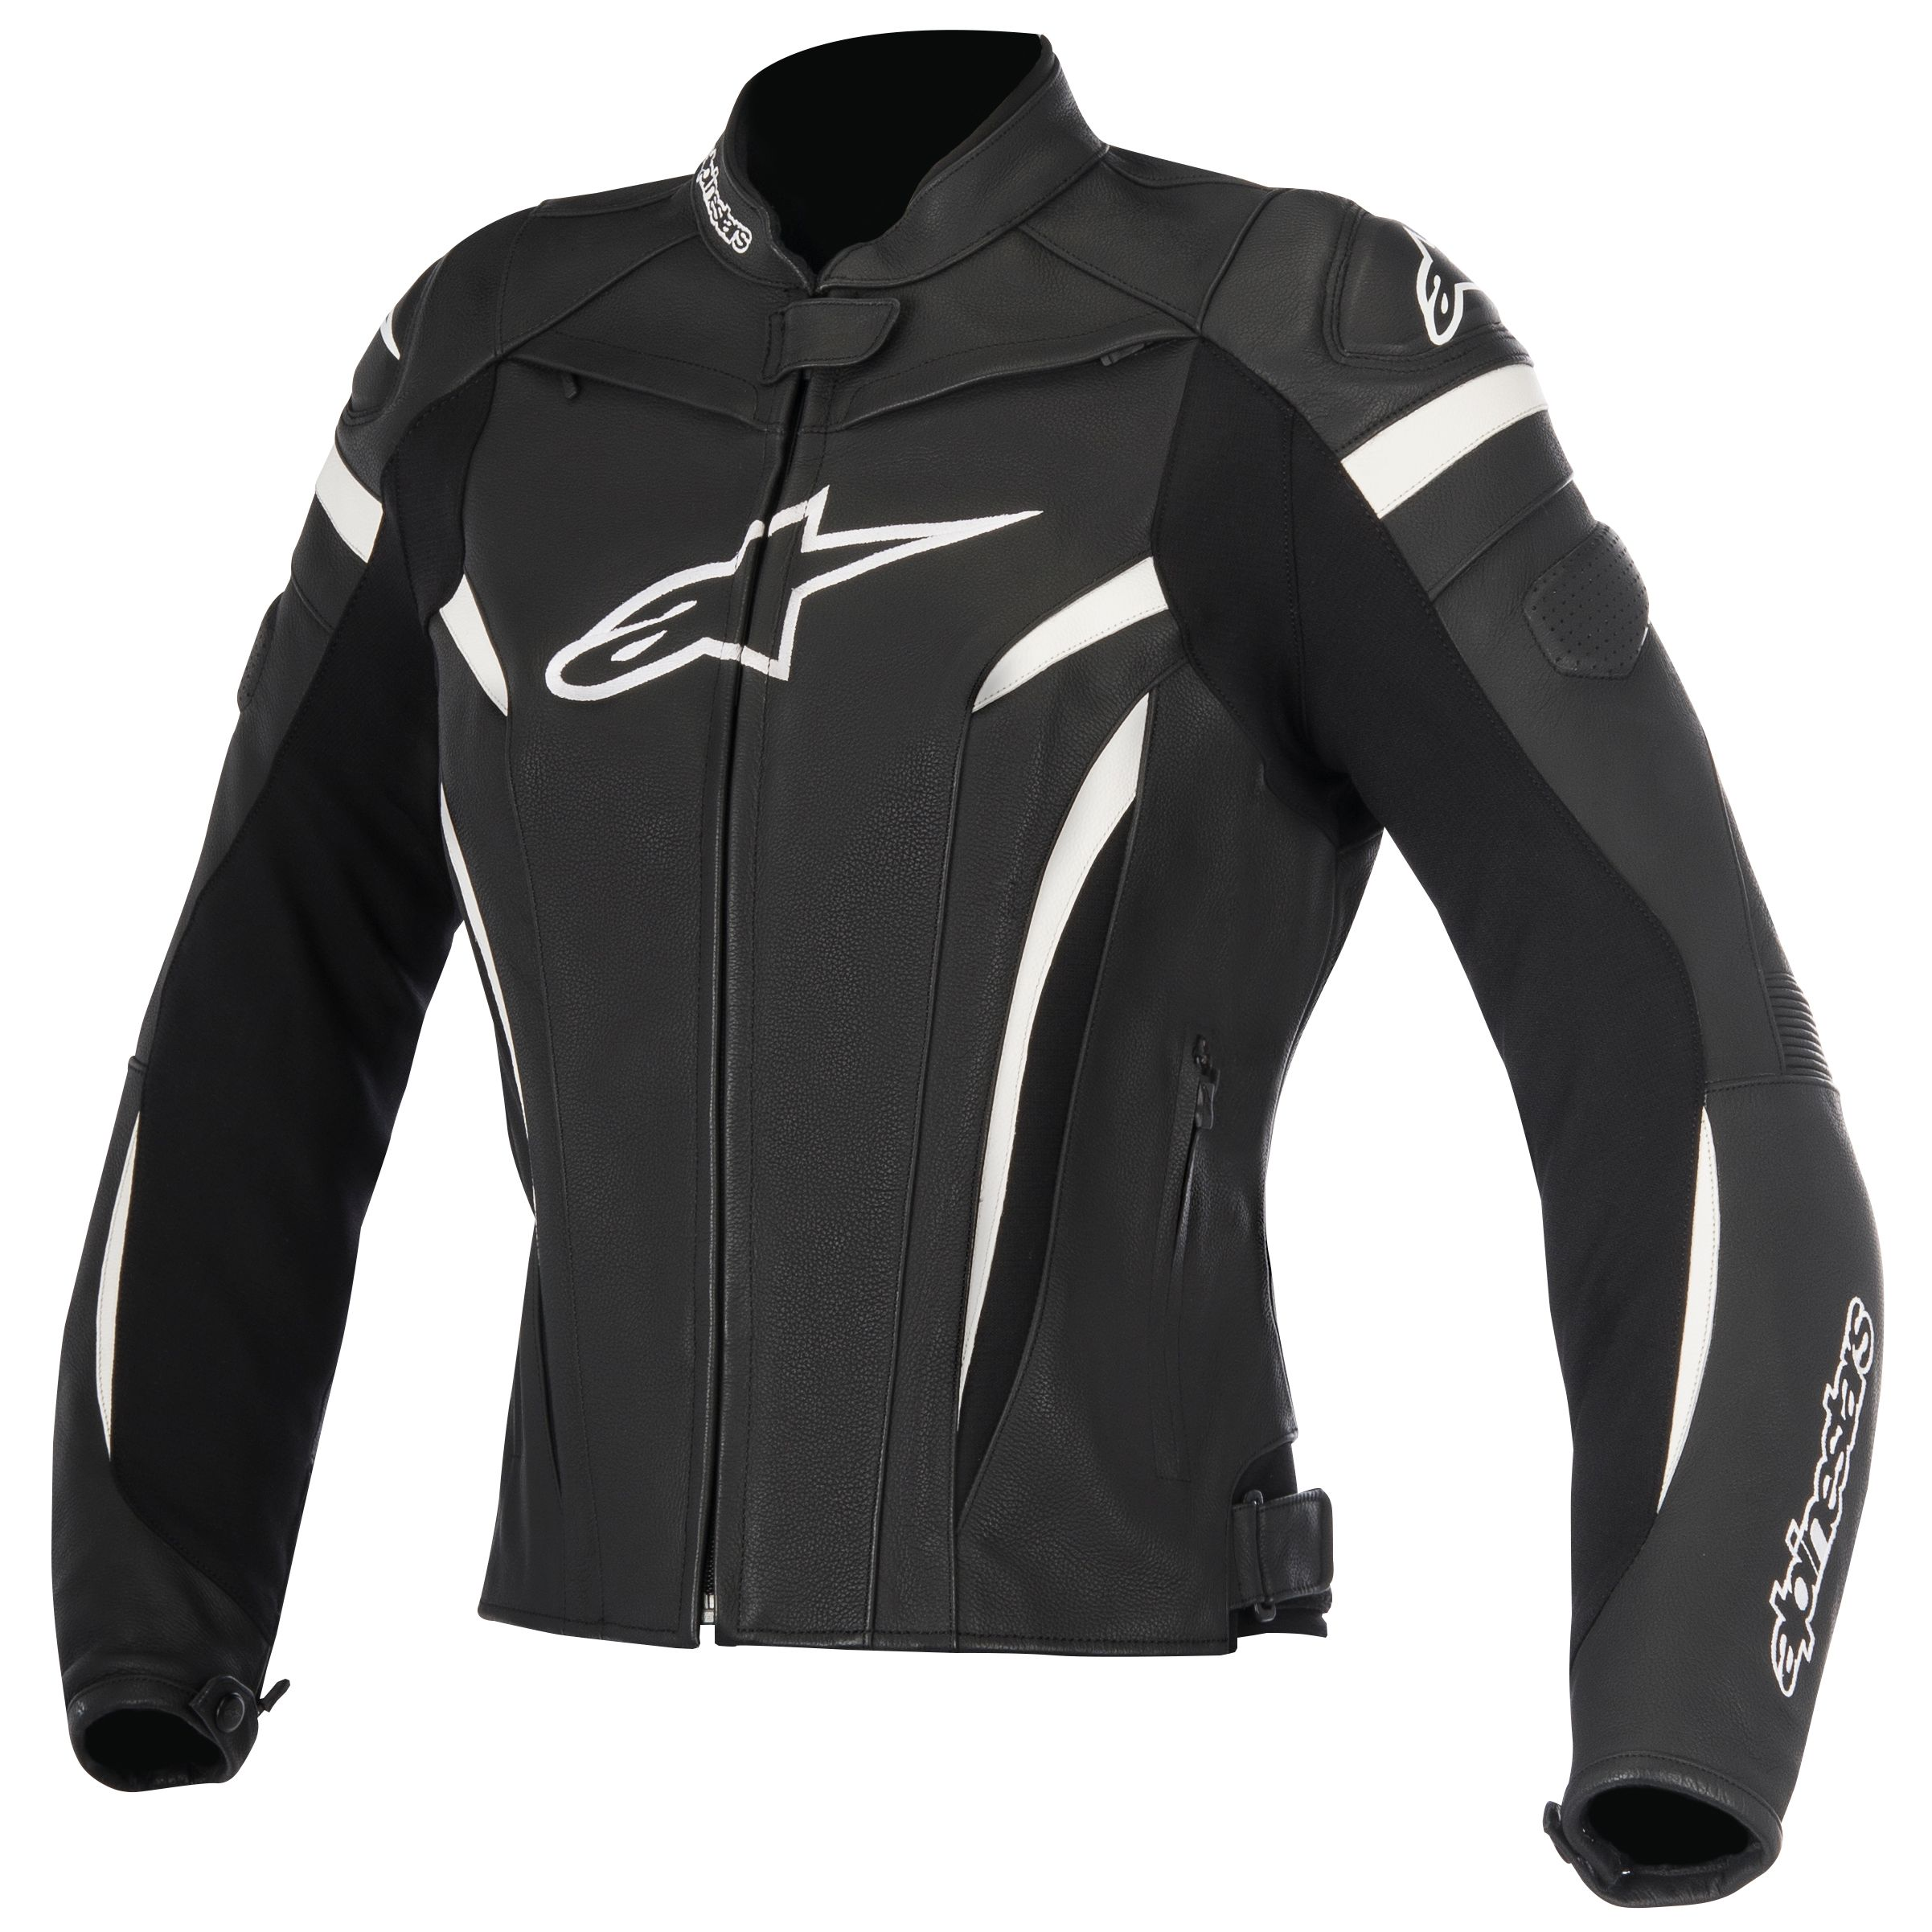 blouson alpinestars stella gp plus r v2 noir blanc sasie center moto. Black Bedroom Furniture Sets. Home Design Ideas